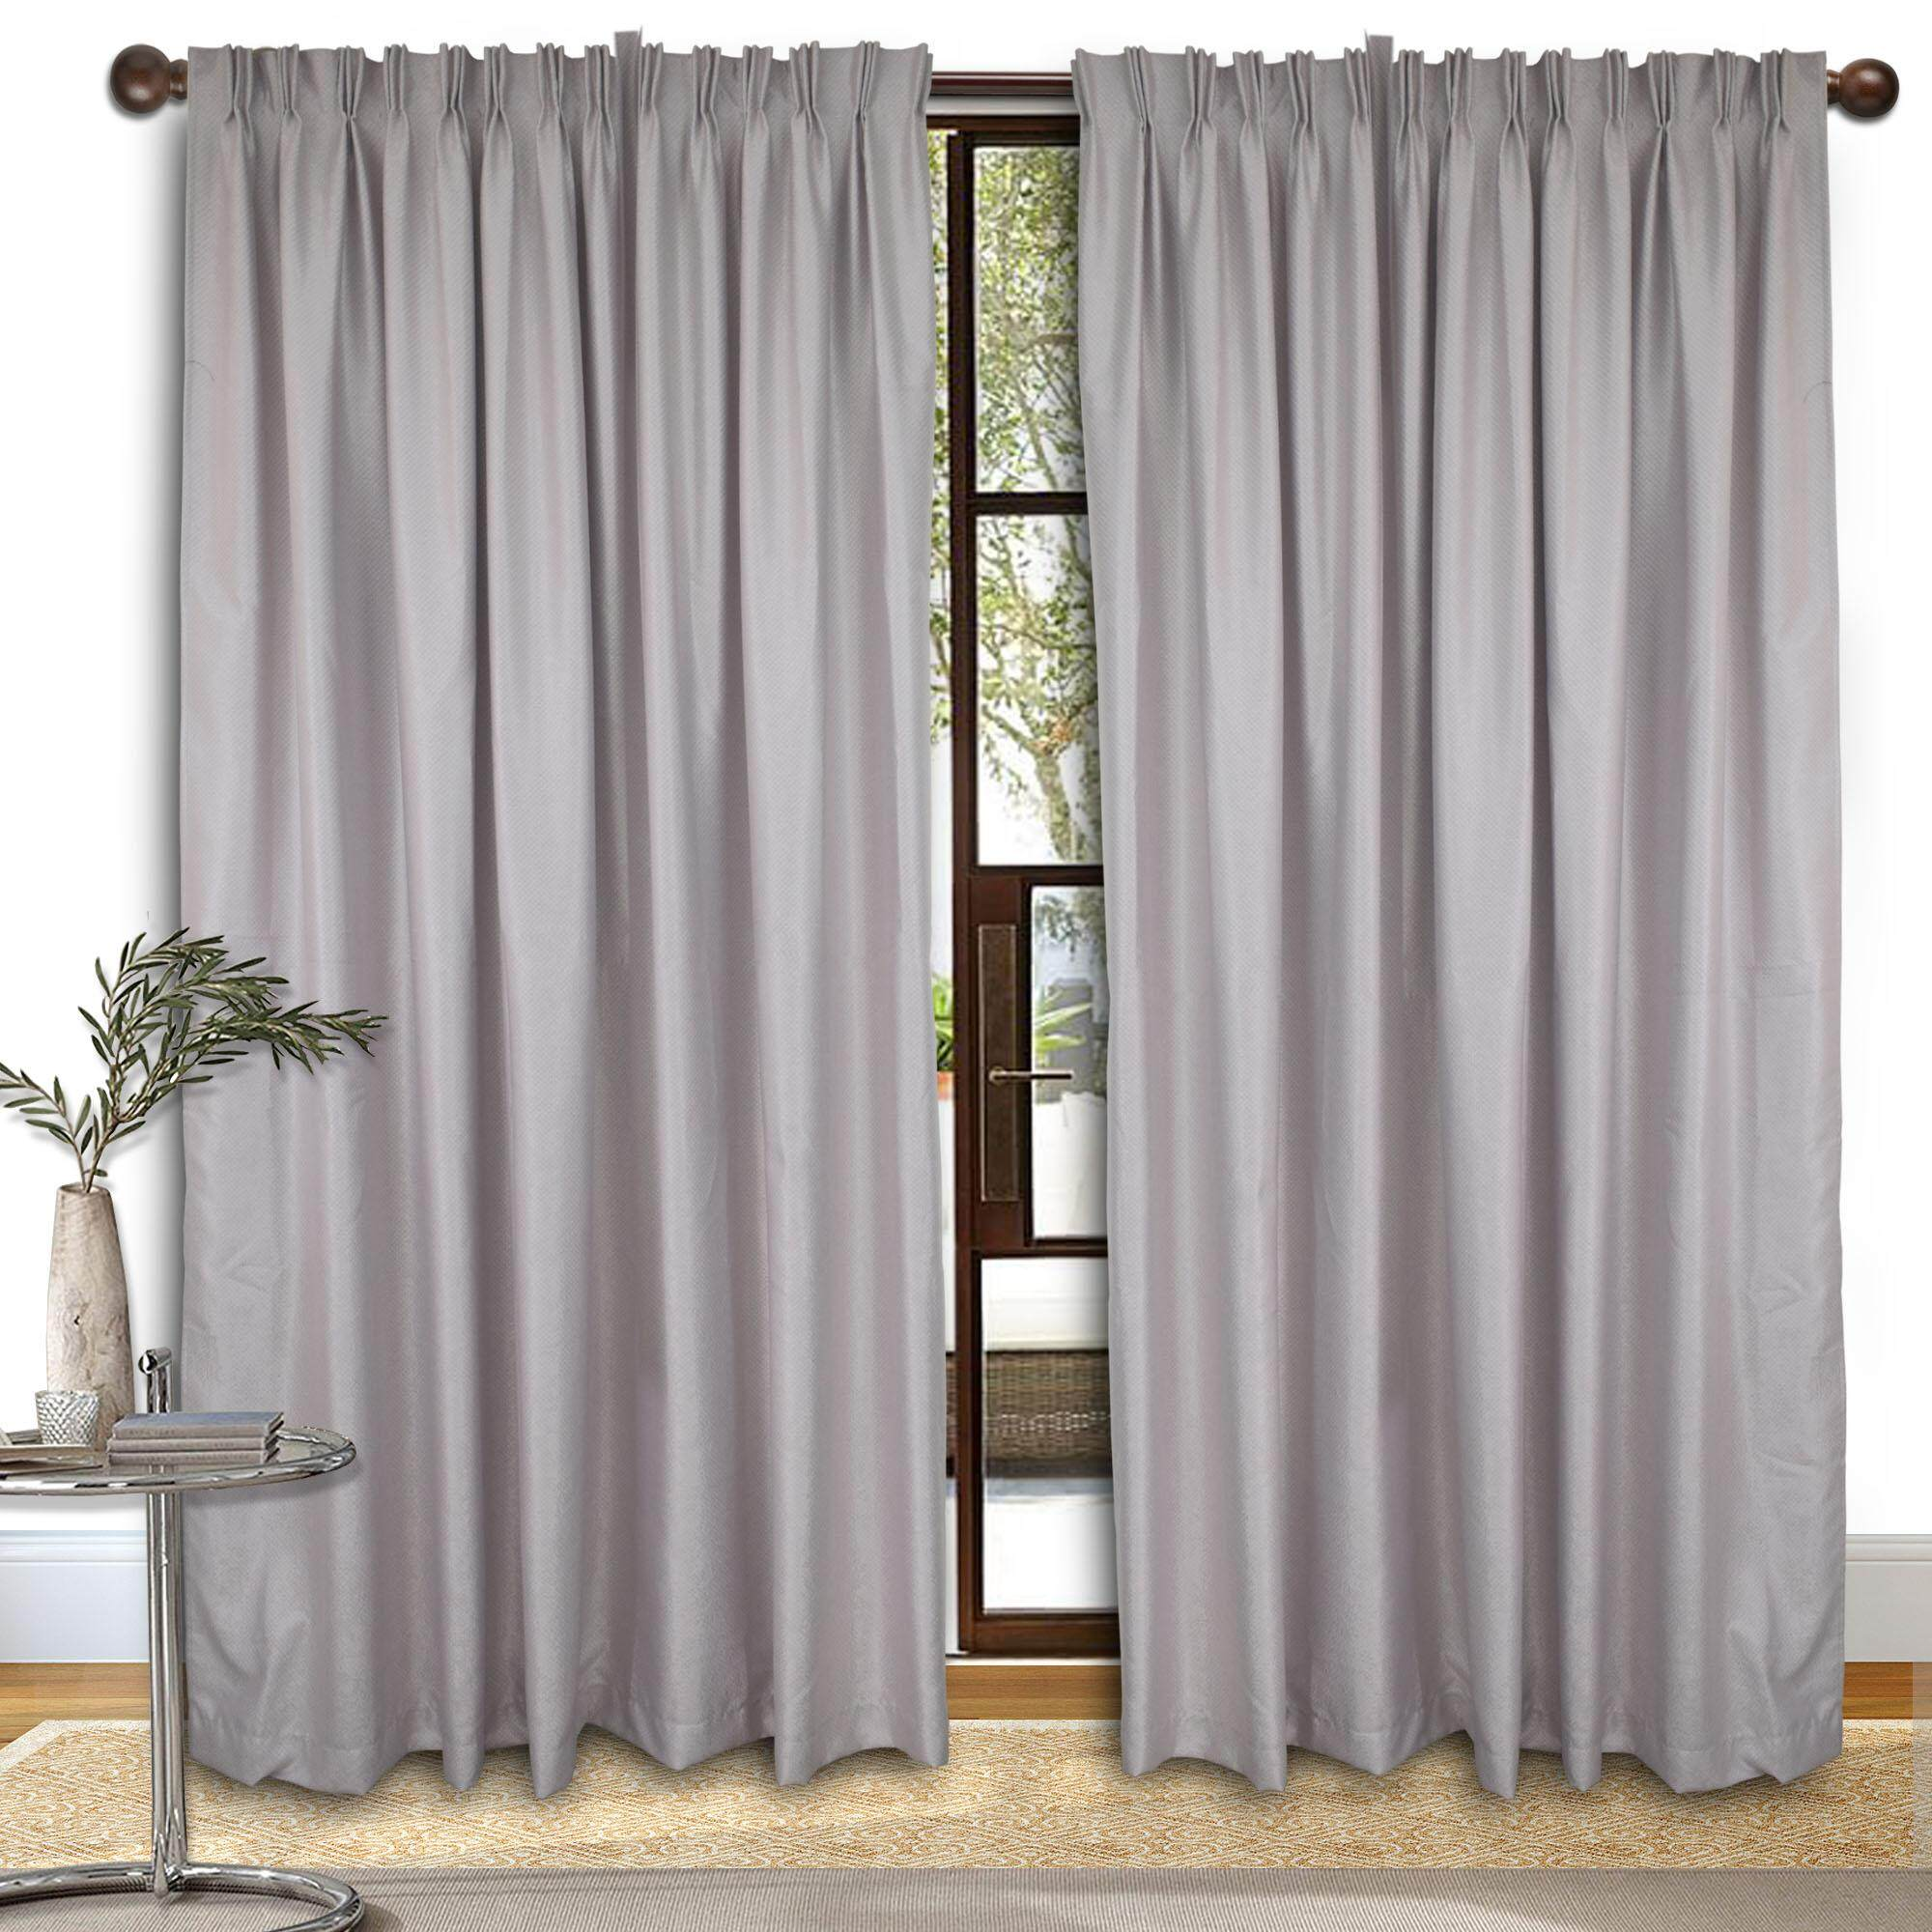 Sliding Door Curtain Essina Premium Blackout French Pleated Curtain 1 Layer Ziva Grey 4 5 Sliding Door